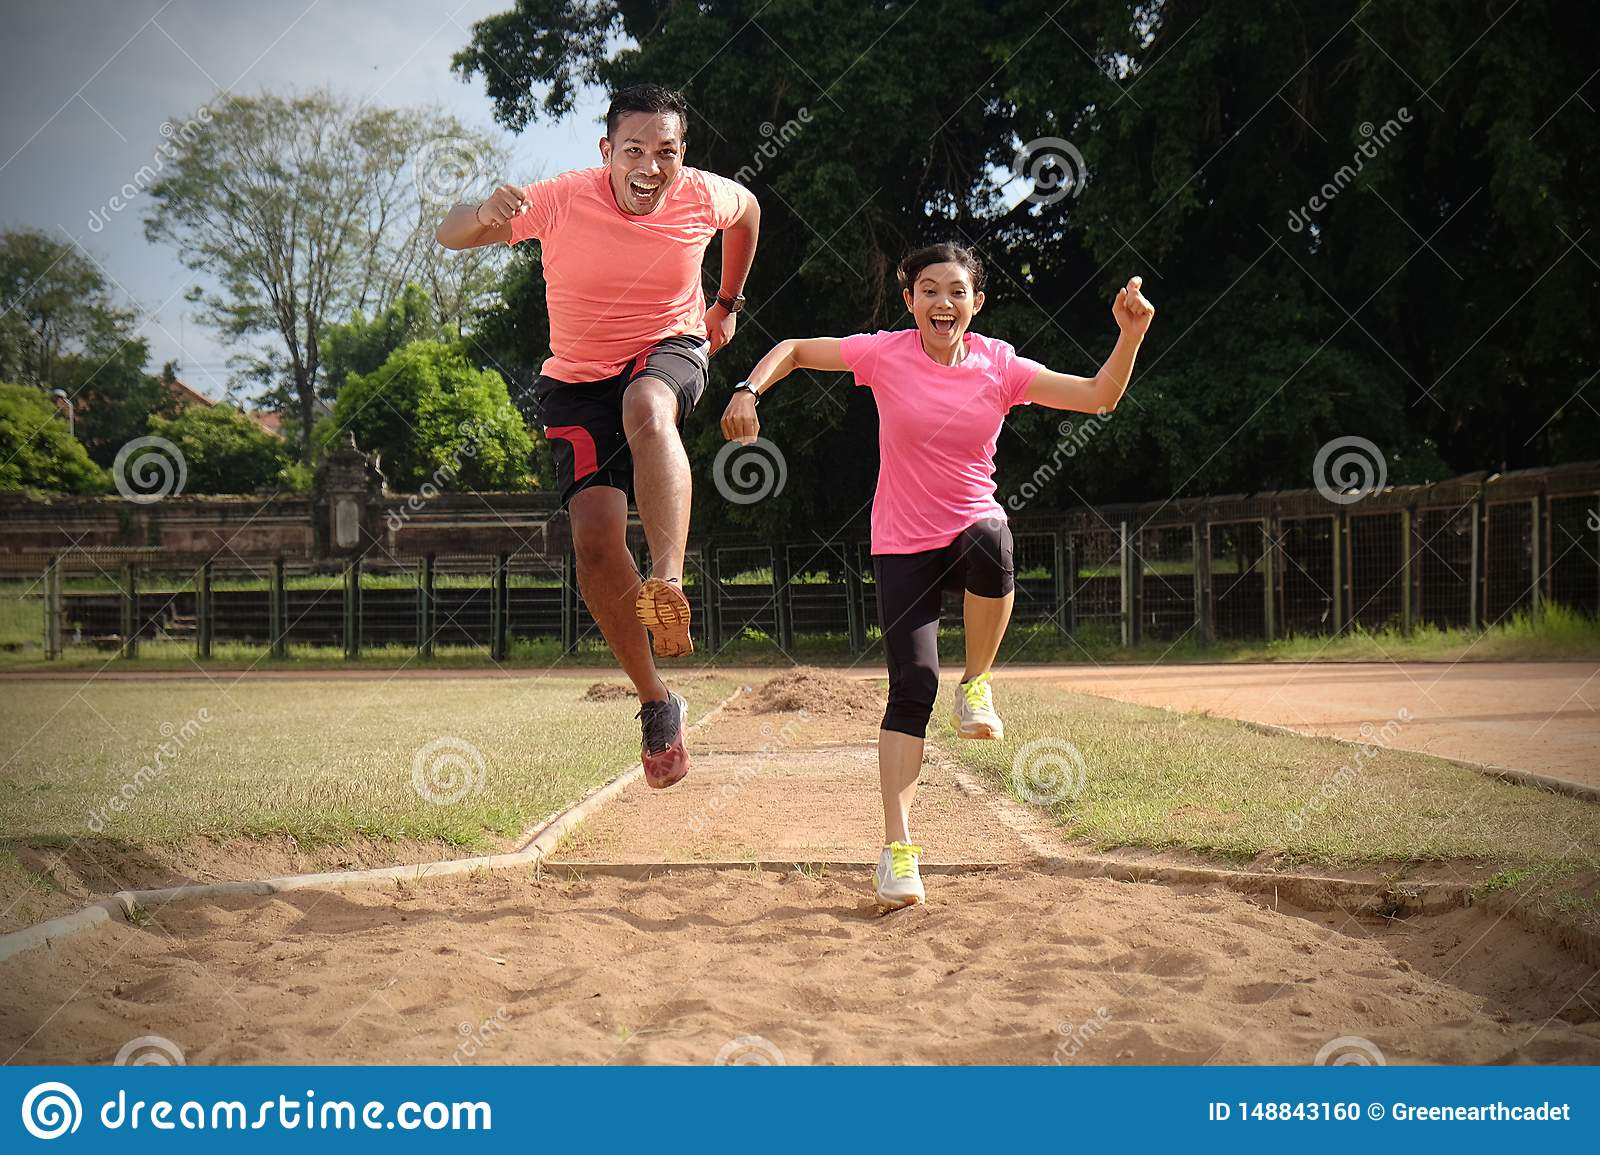 Two sports partners are jogging together on a sunny day wearing orange and pink shirts. They look at each other and smile, enjoy